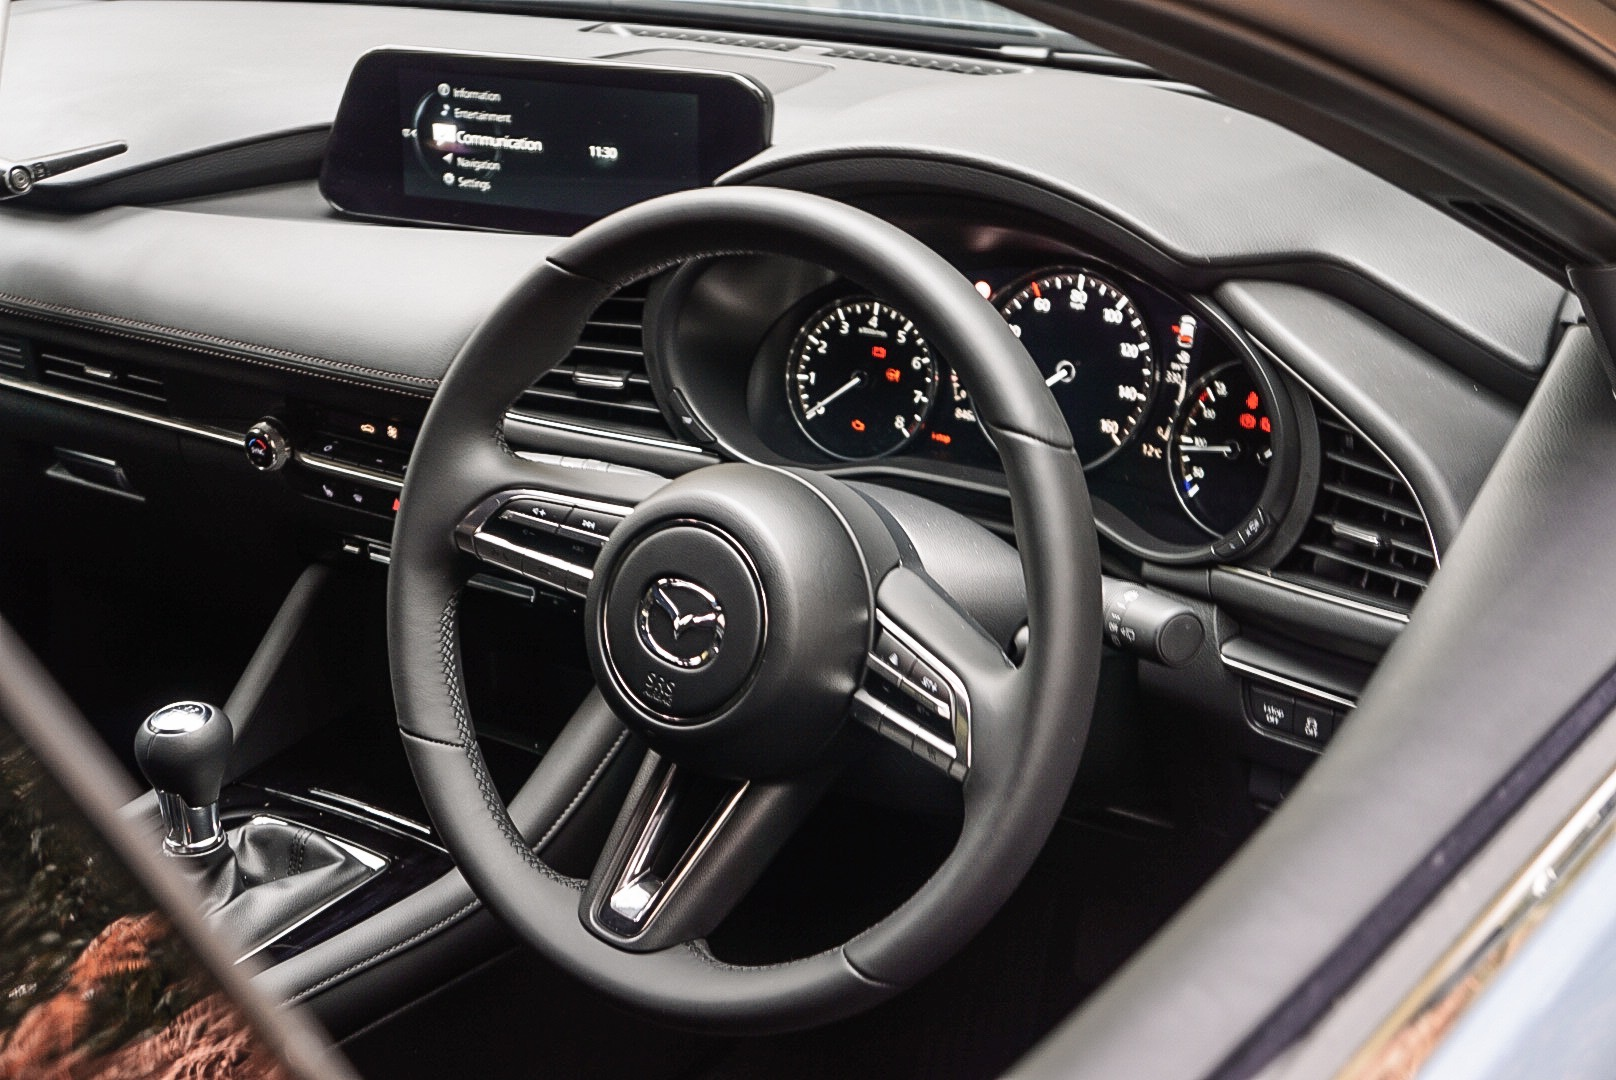 The interior of the Mazda3 is solidly built